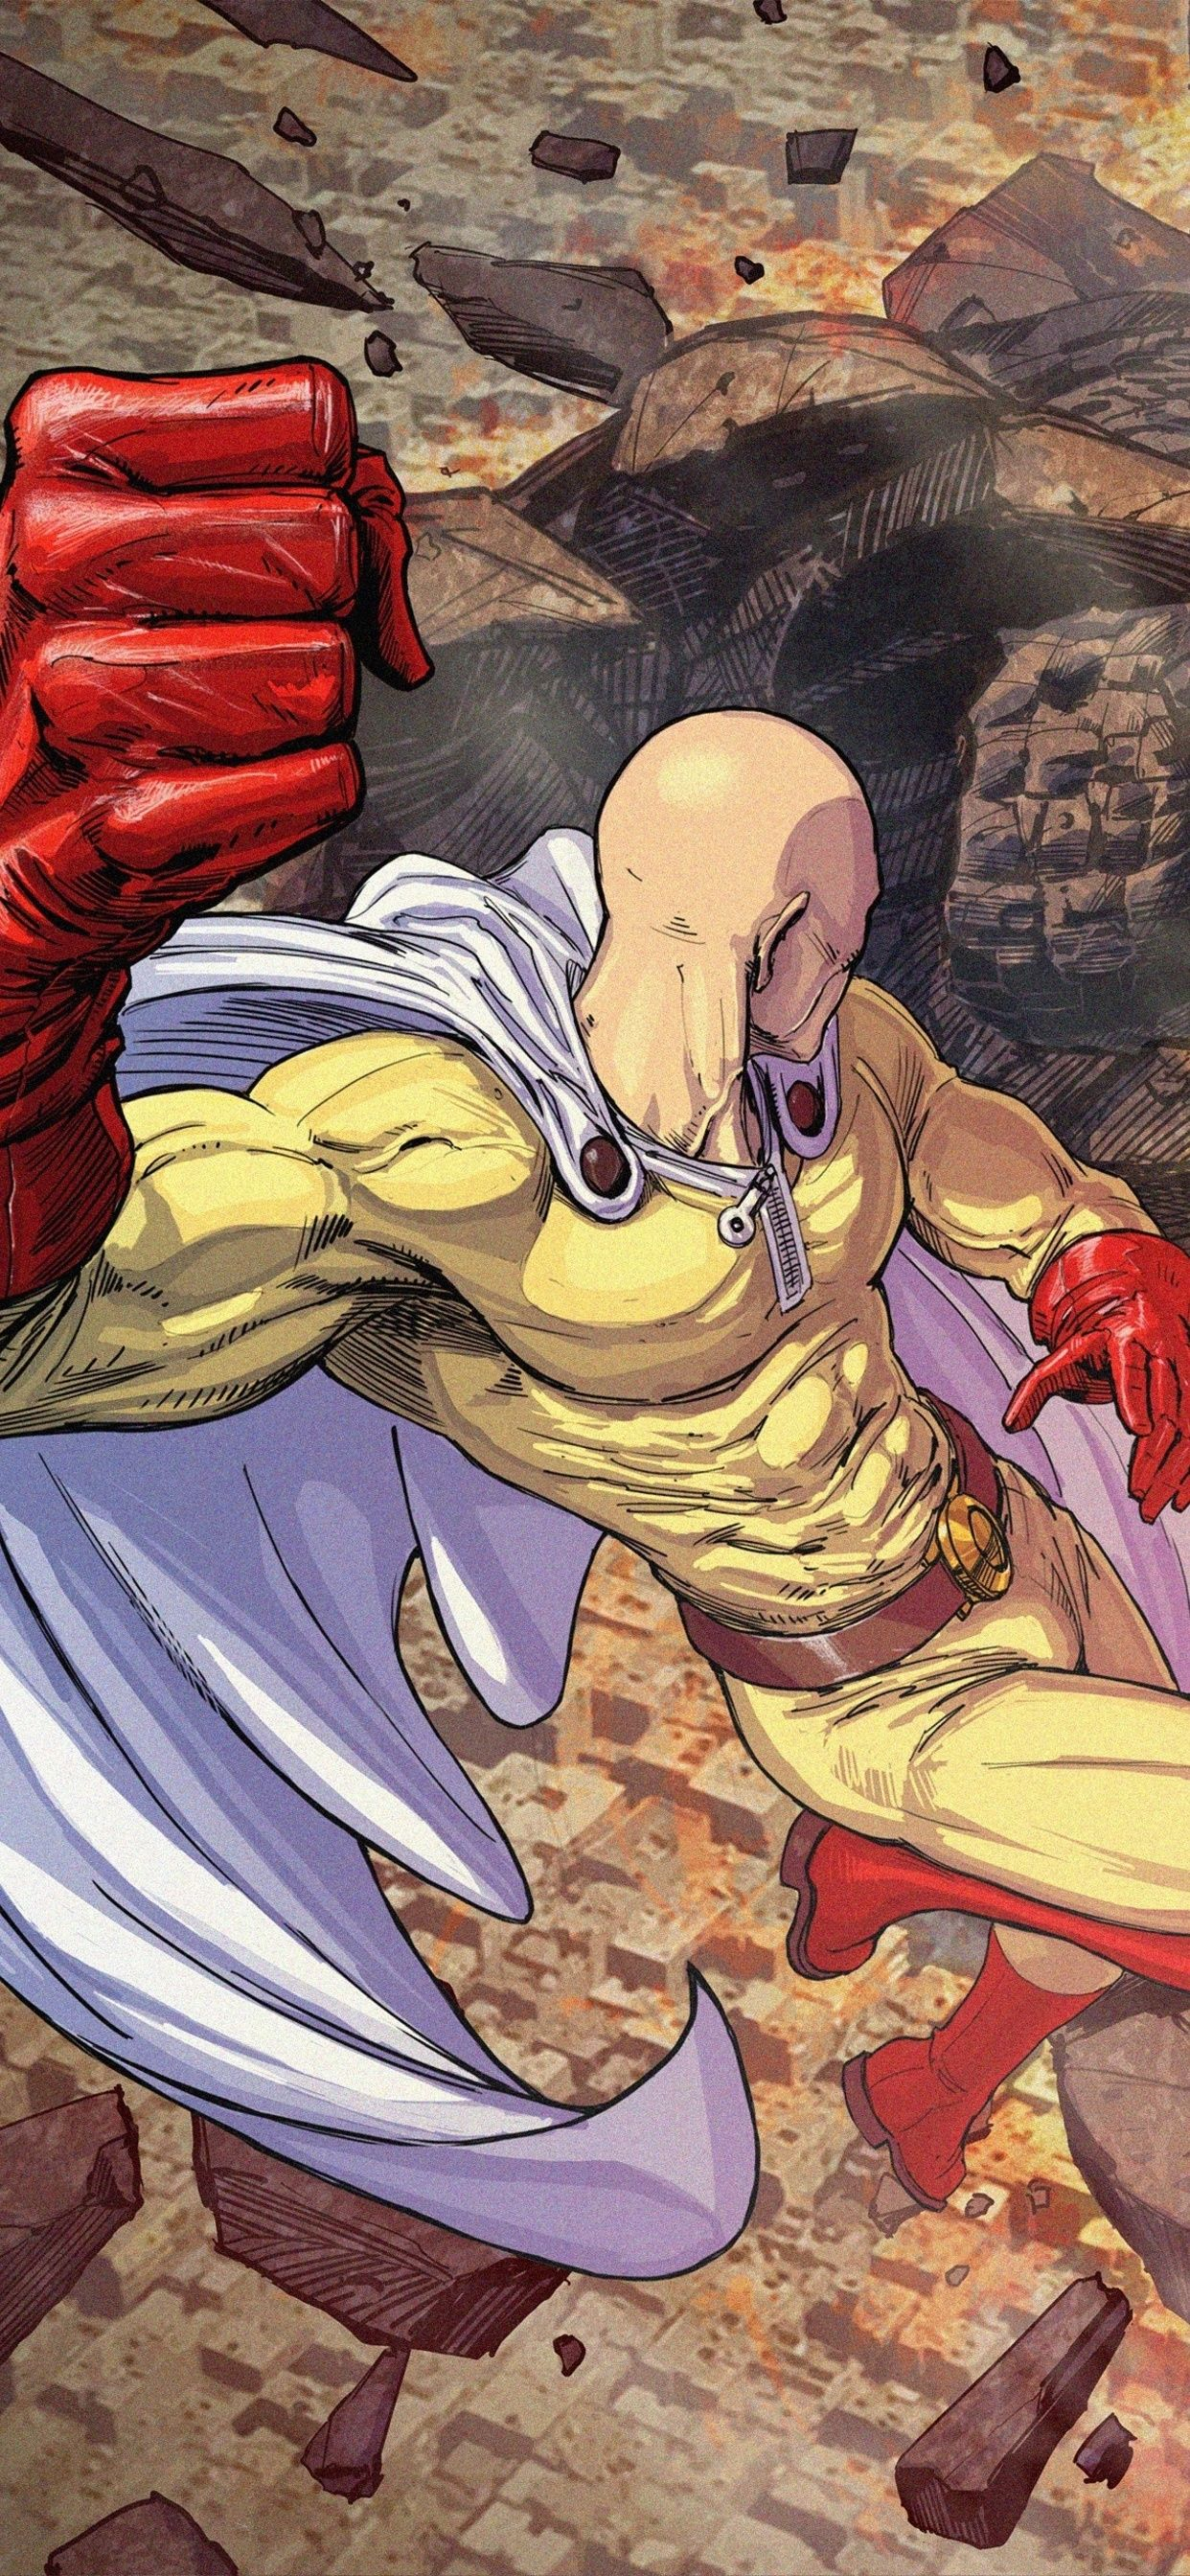 One Punch Man Wallpaper Iphone Xs Max Wallpaper Nice In 2020 Man Wallpaper One Punch Man One Punch